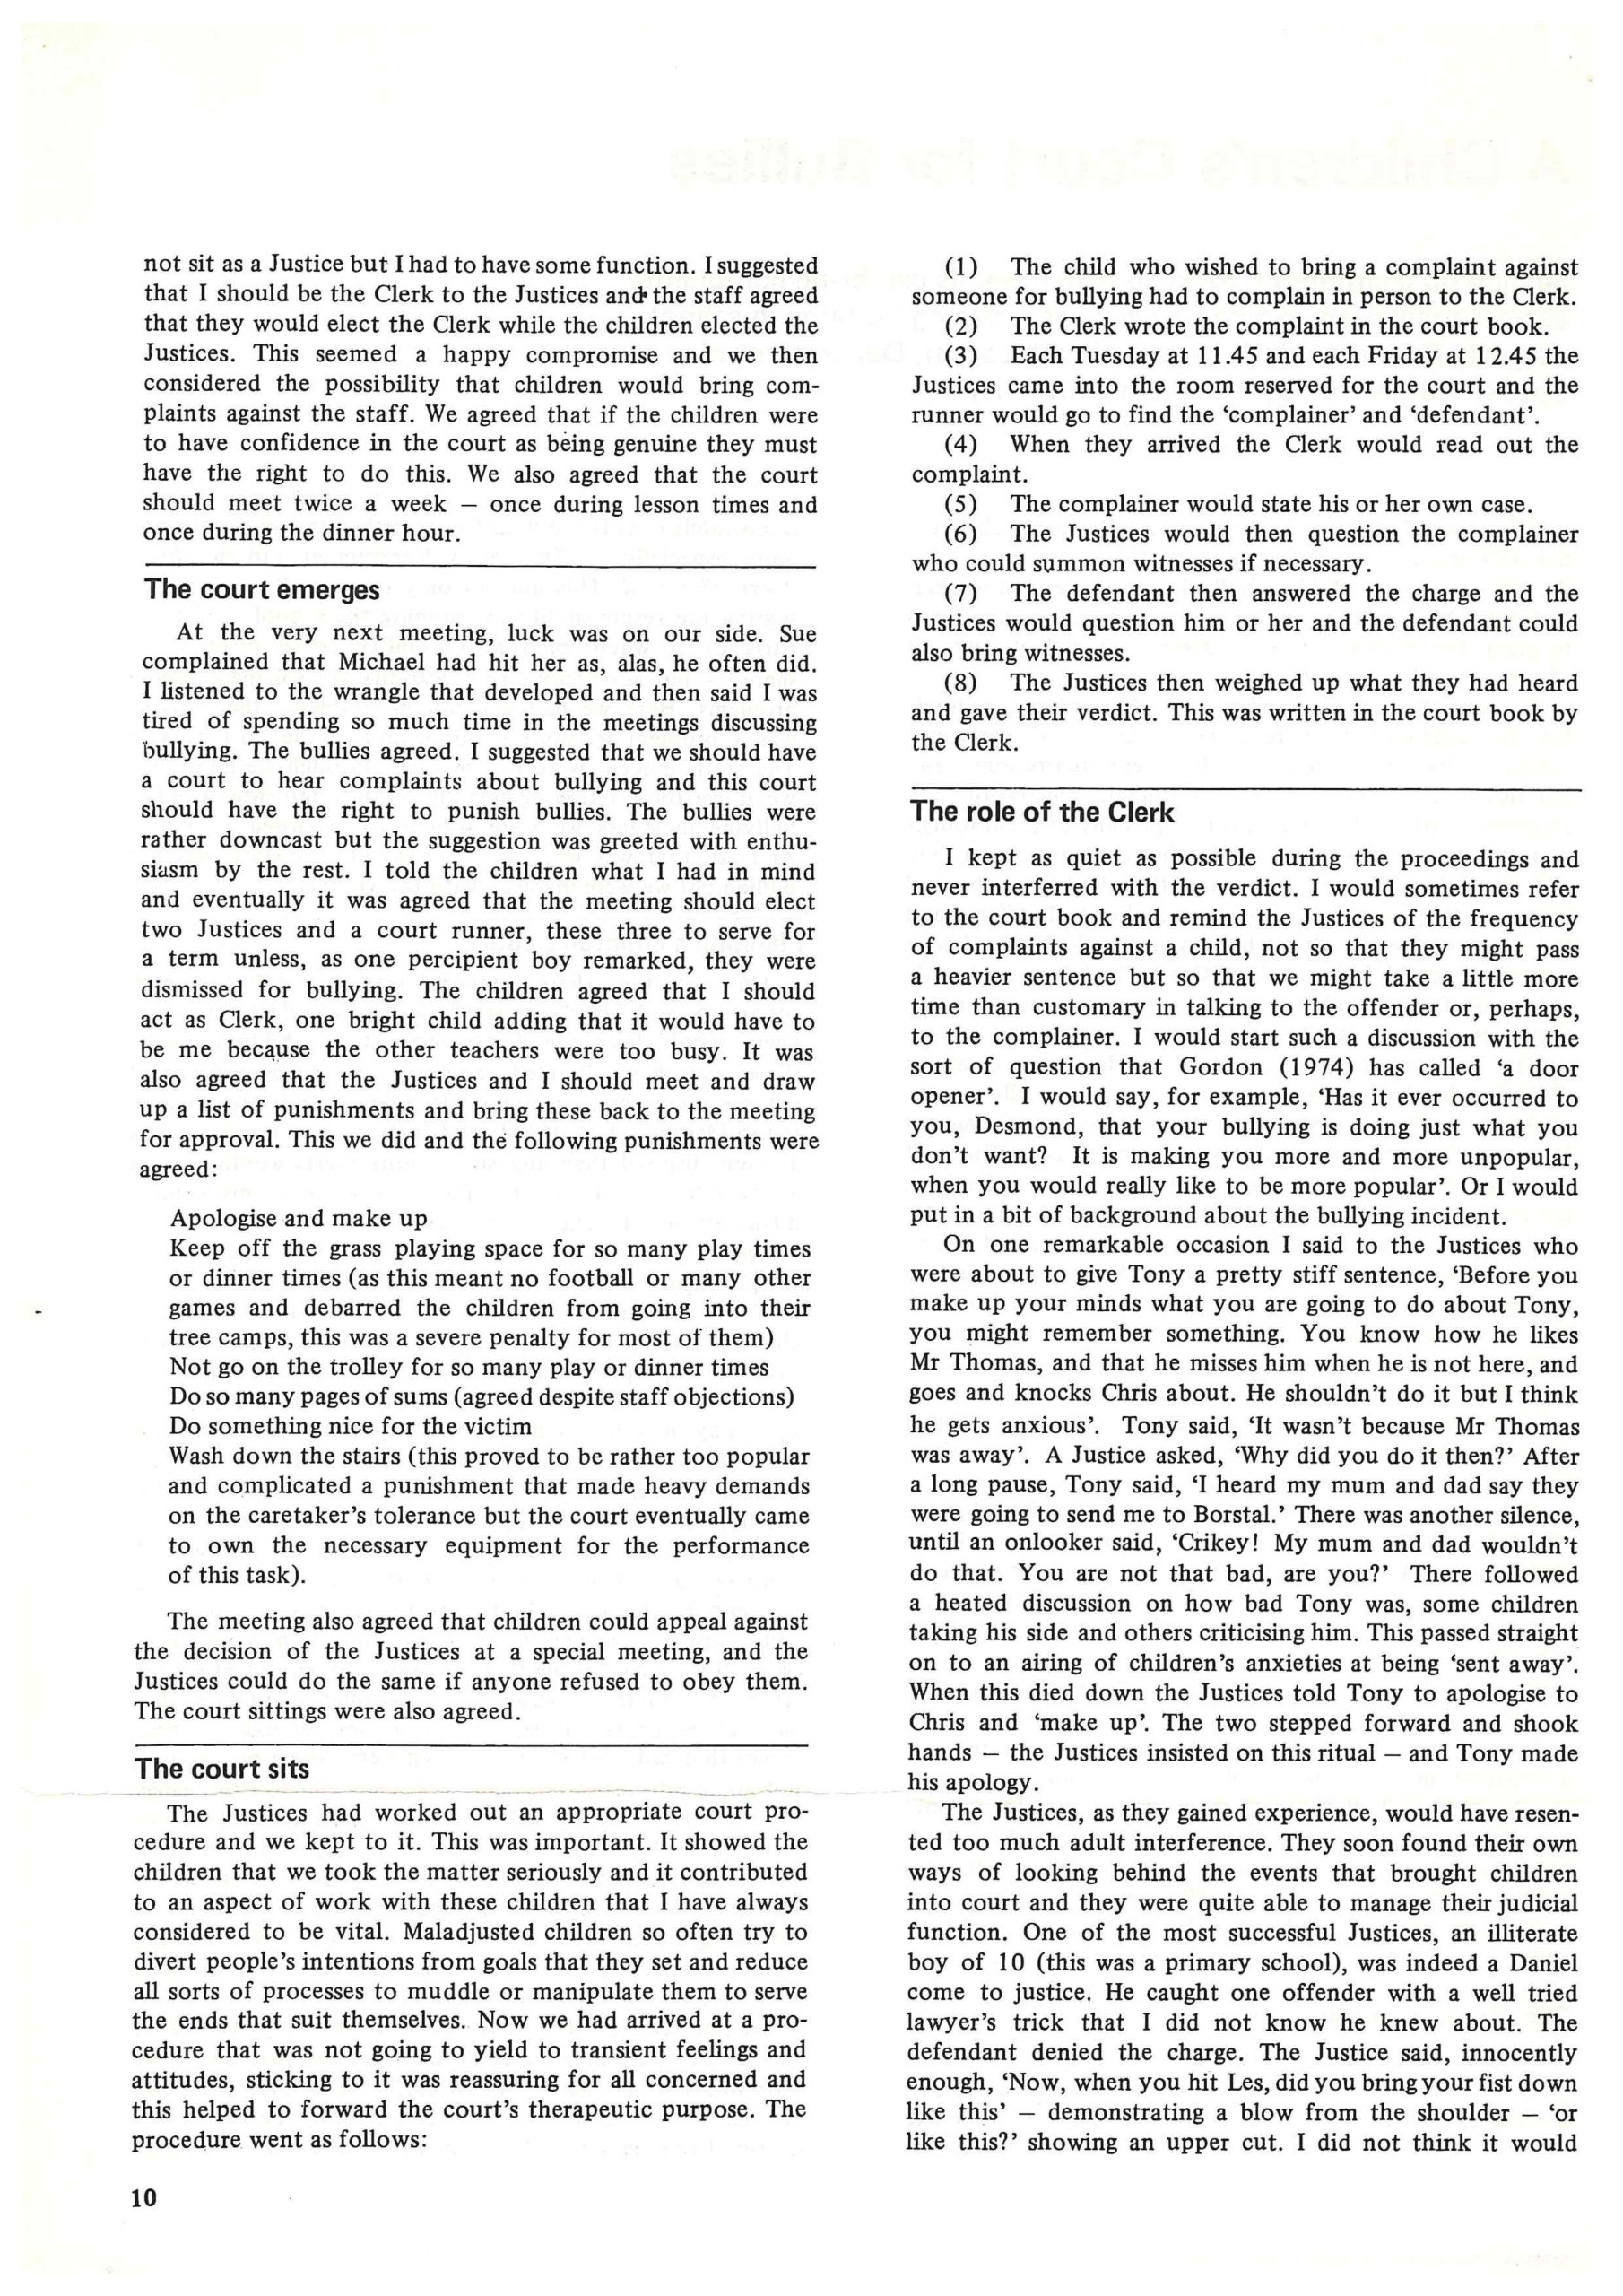 Special Education: Forward Trends, Vol 9, No.1 published in April 1982